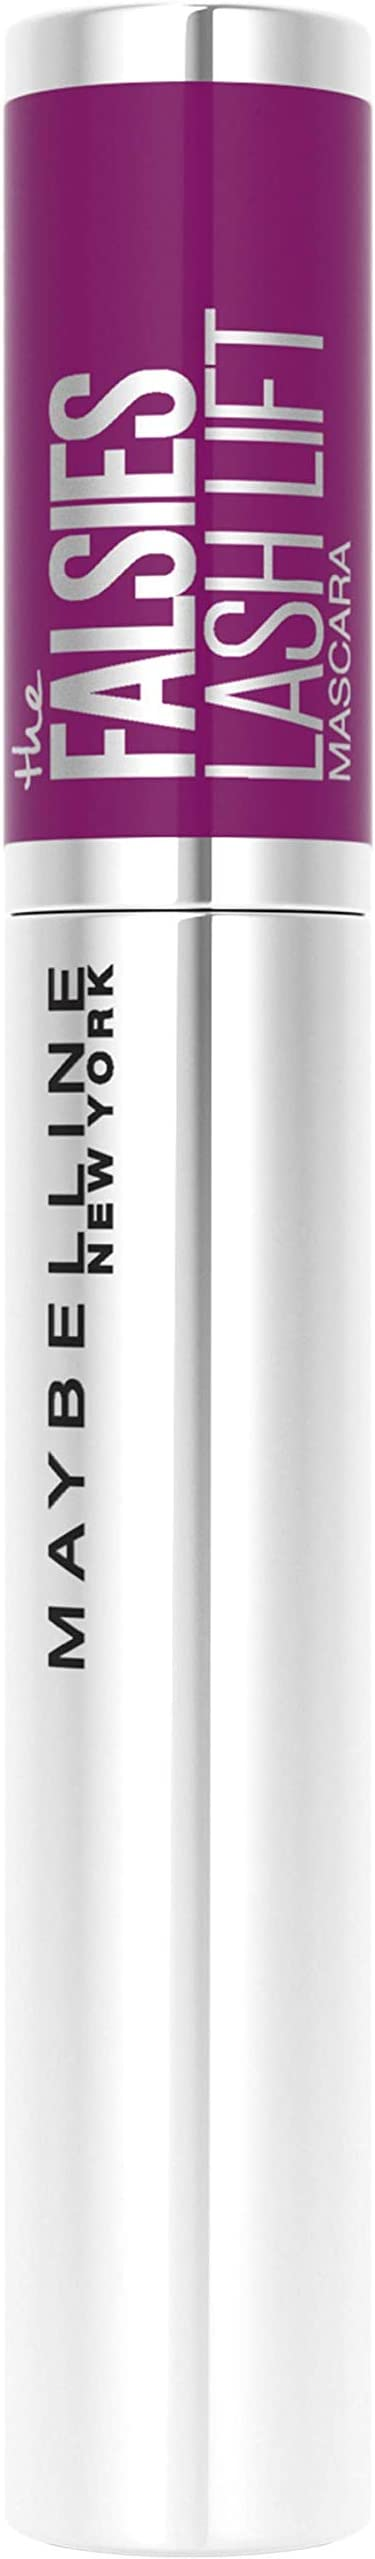 Oferta amazon: Maybelline New York, Máscara Efecto Pestañas Postizas, The Falsies Lash Lift, Color: Negro, 9.6 ml